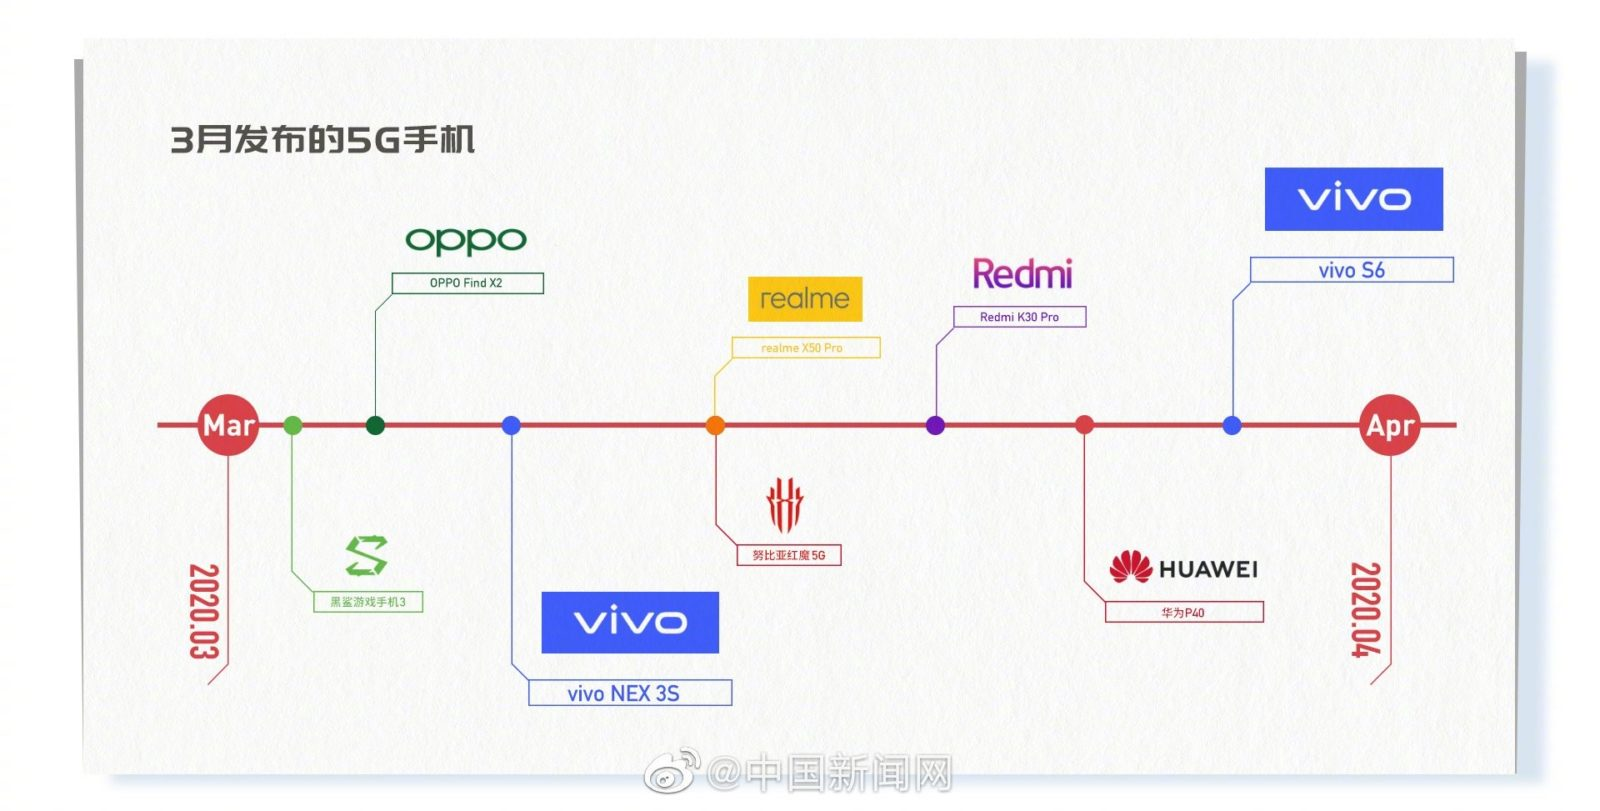 Vivo S6 Will Launch With 5G Support in March